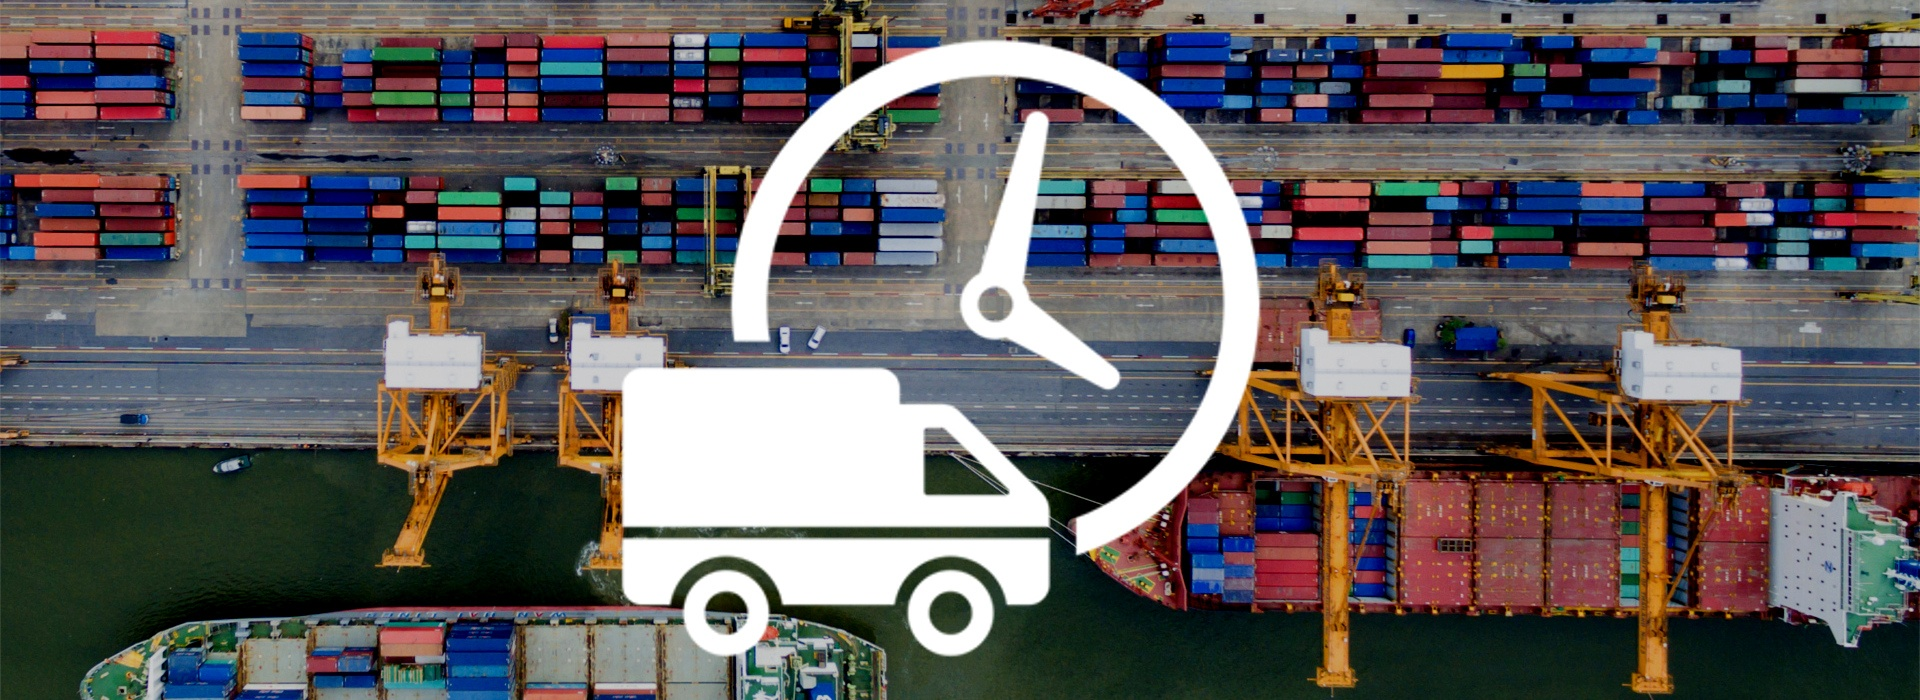 Camlogic – guaranteed delivery times